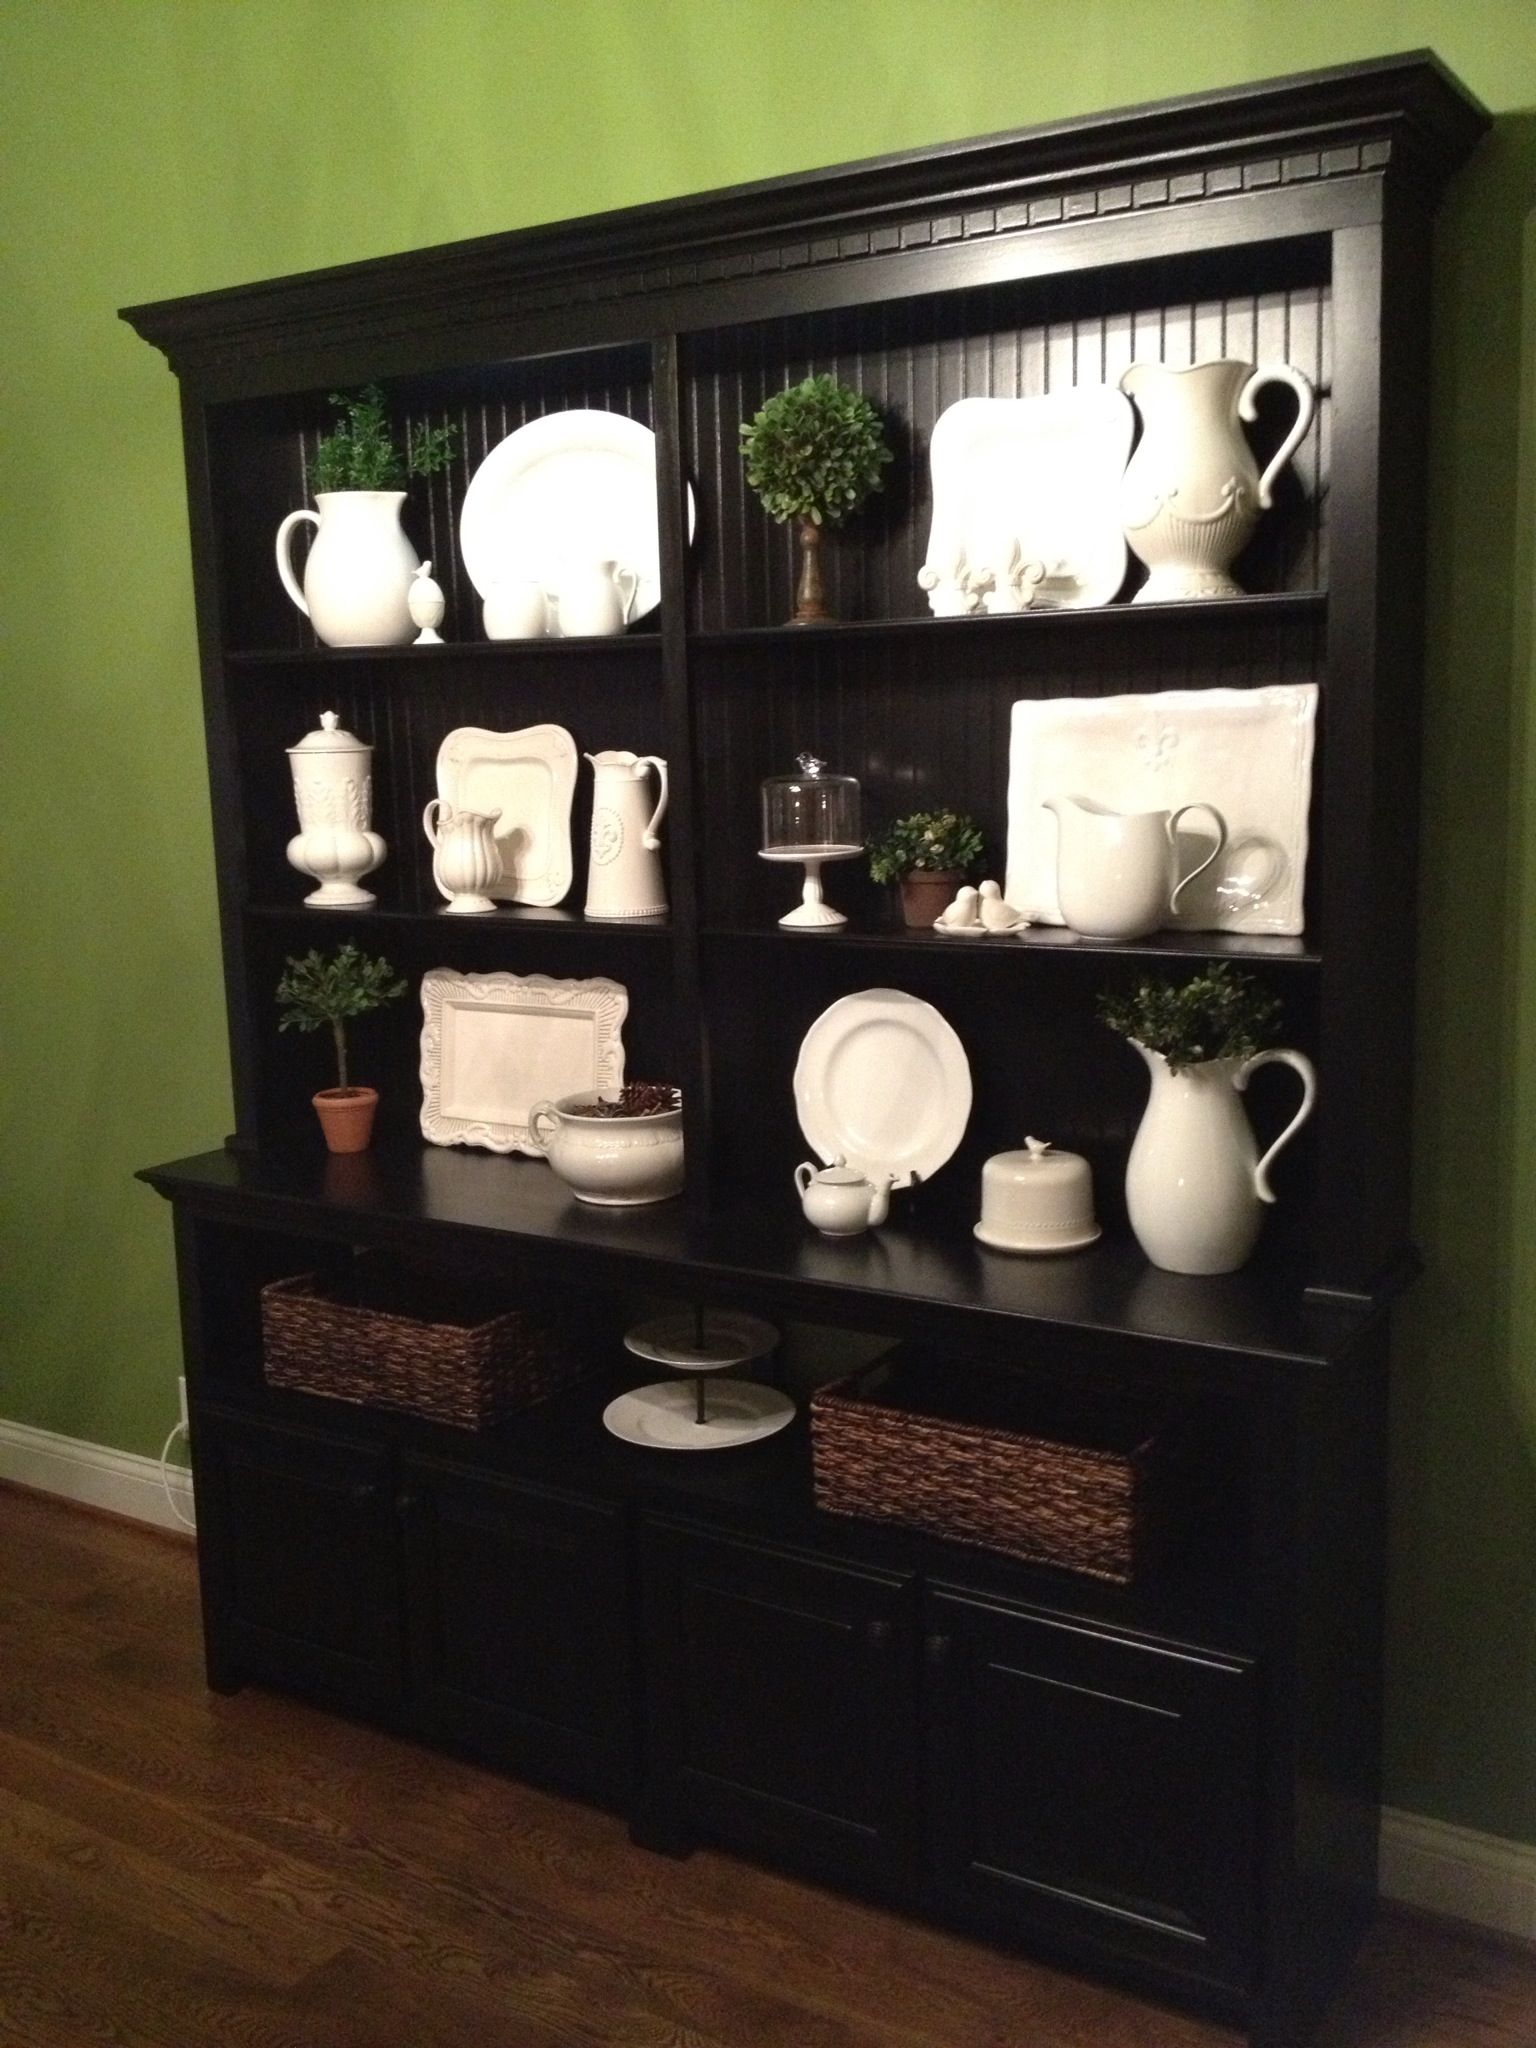 Dining Room Hutch...not So Dark But Love The Way This Displays The China